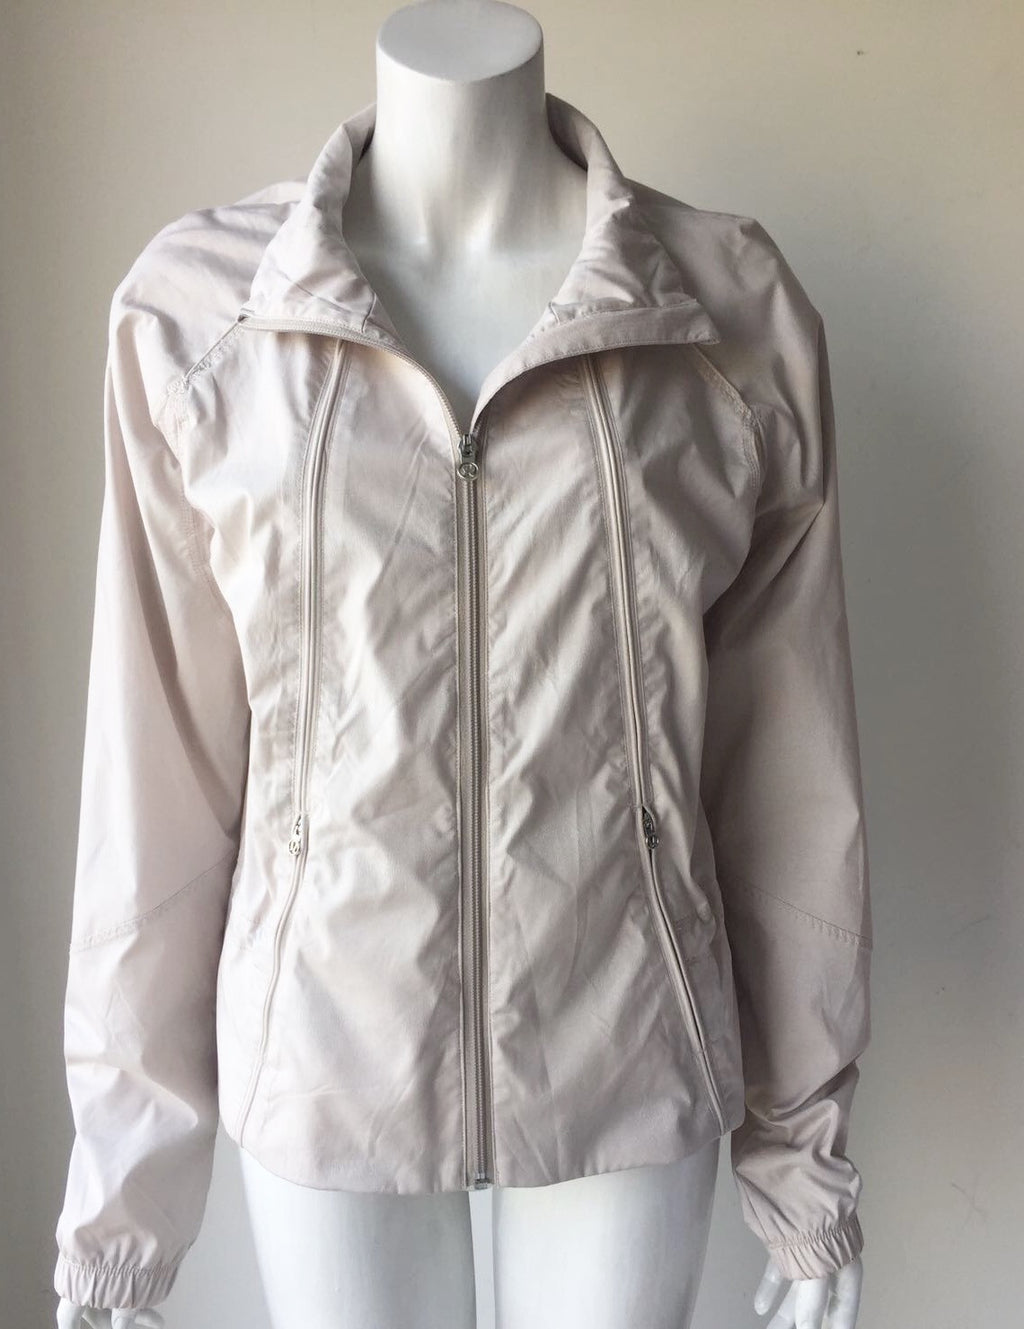 Lululemon Tan Zip-Up Running Jacket Size 10